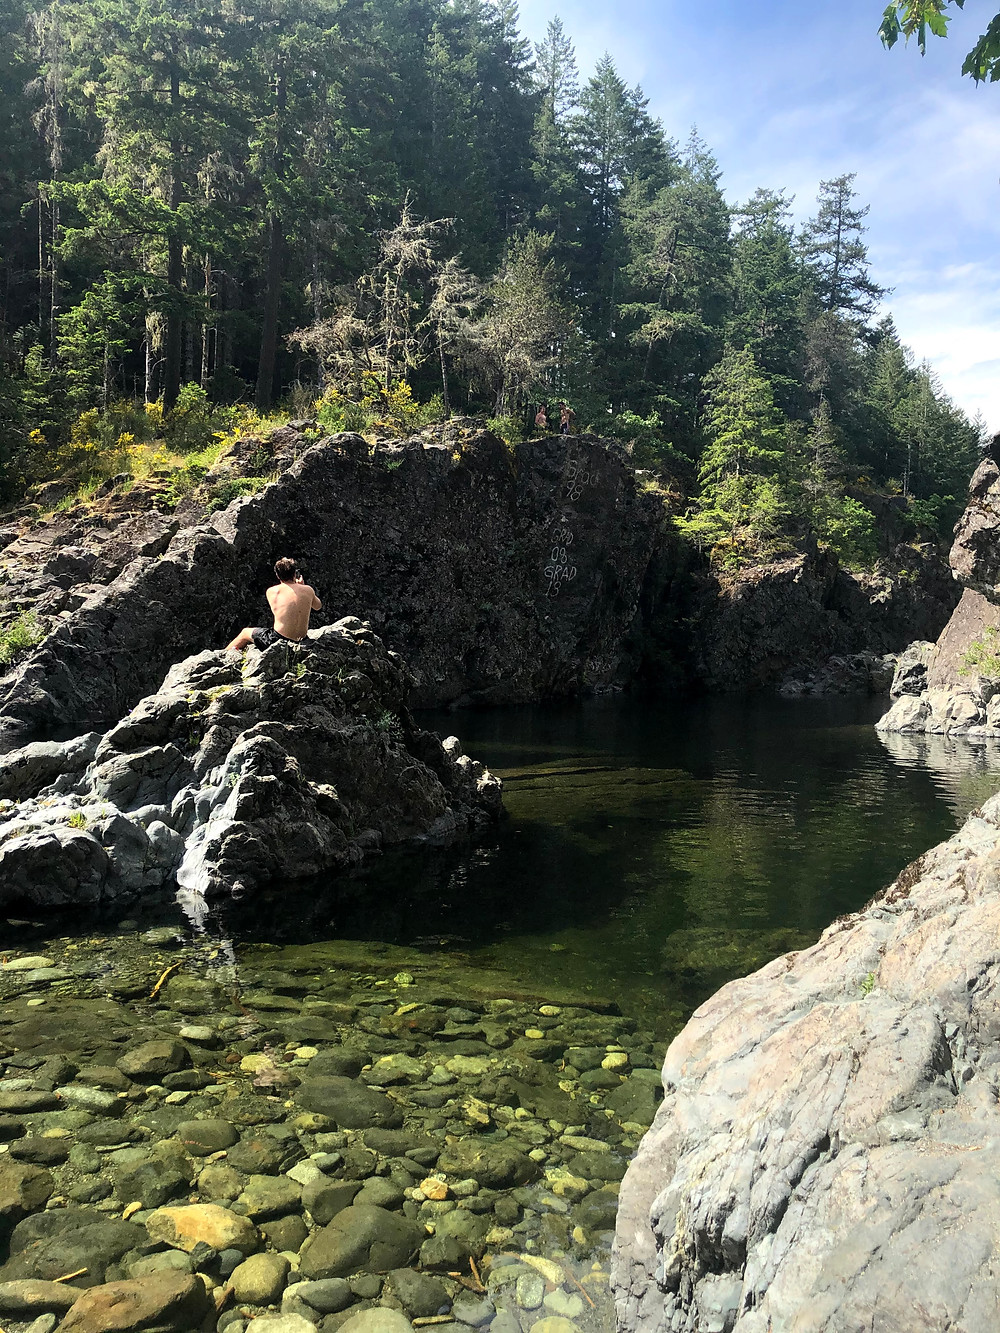 Sooke Potholes in BC should not be missed on a roadtrip from Sooke to Port Renfrew